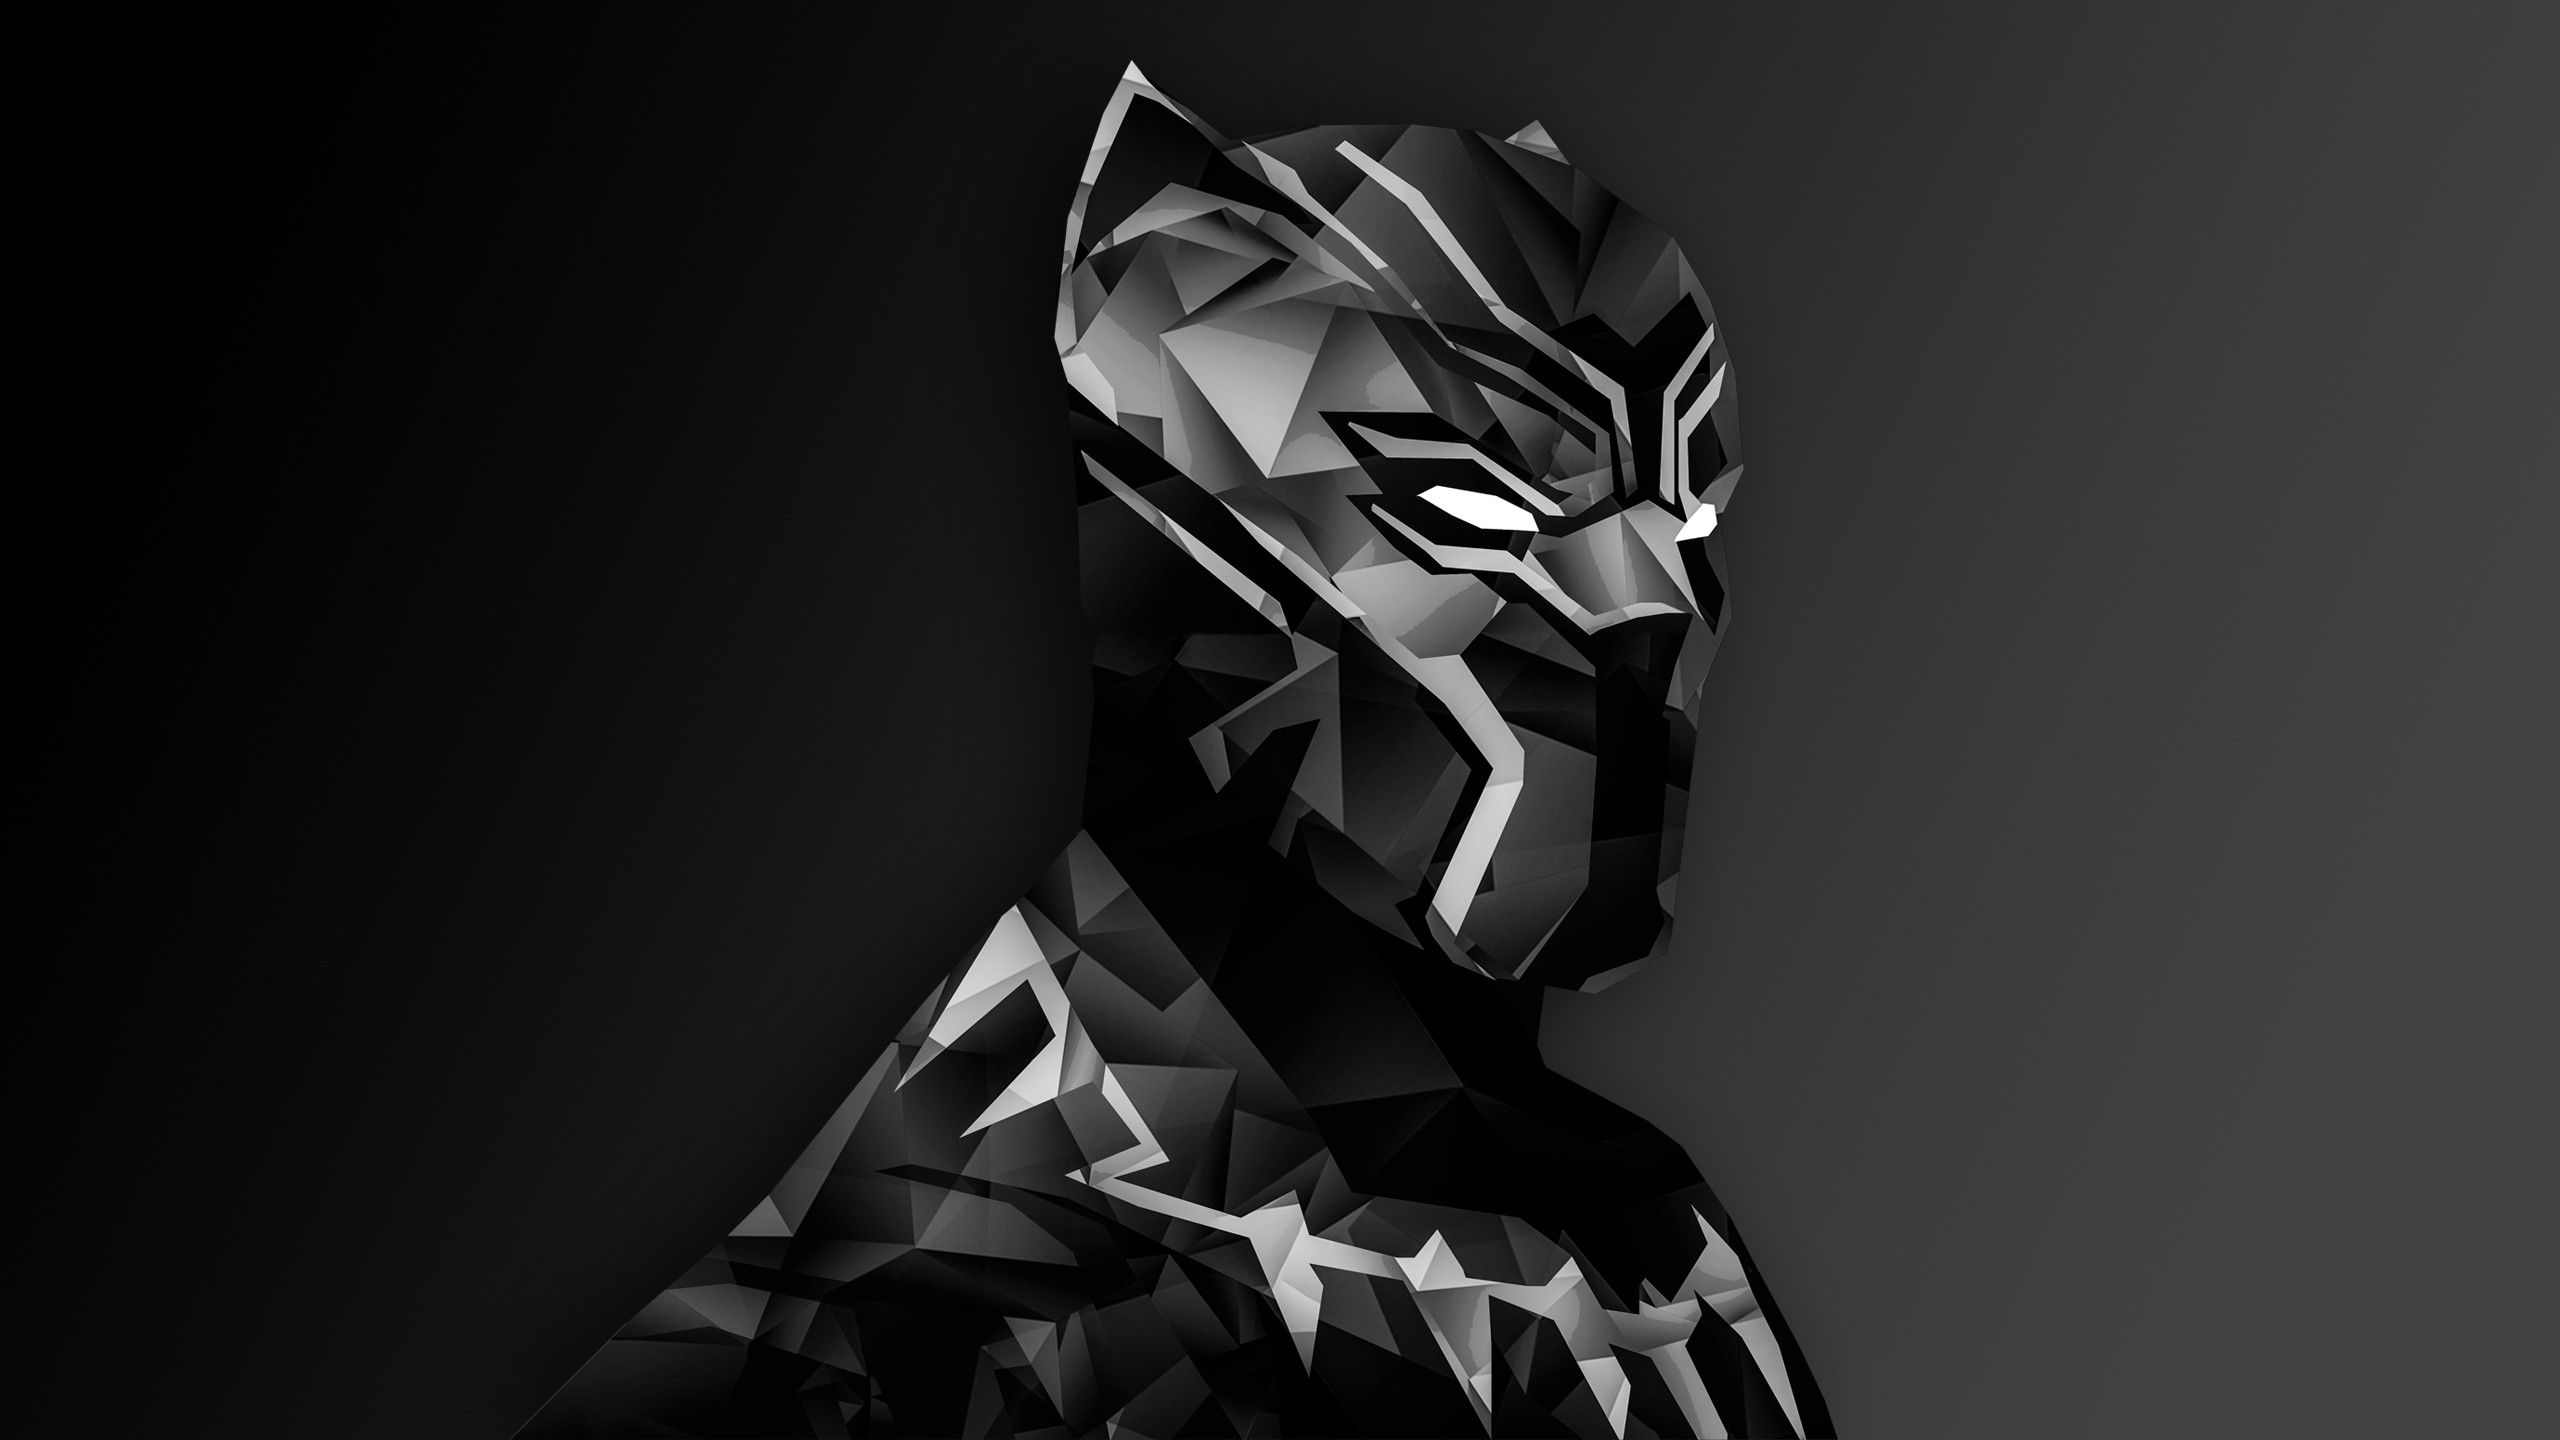 Black Panther Digital Art Wallpaper | Superheroes HD Wallpapers | car restoration | Black ...